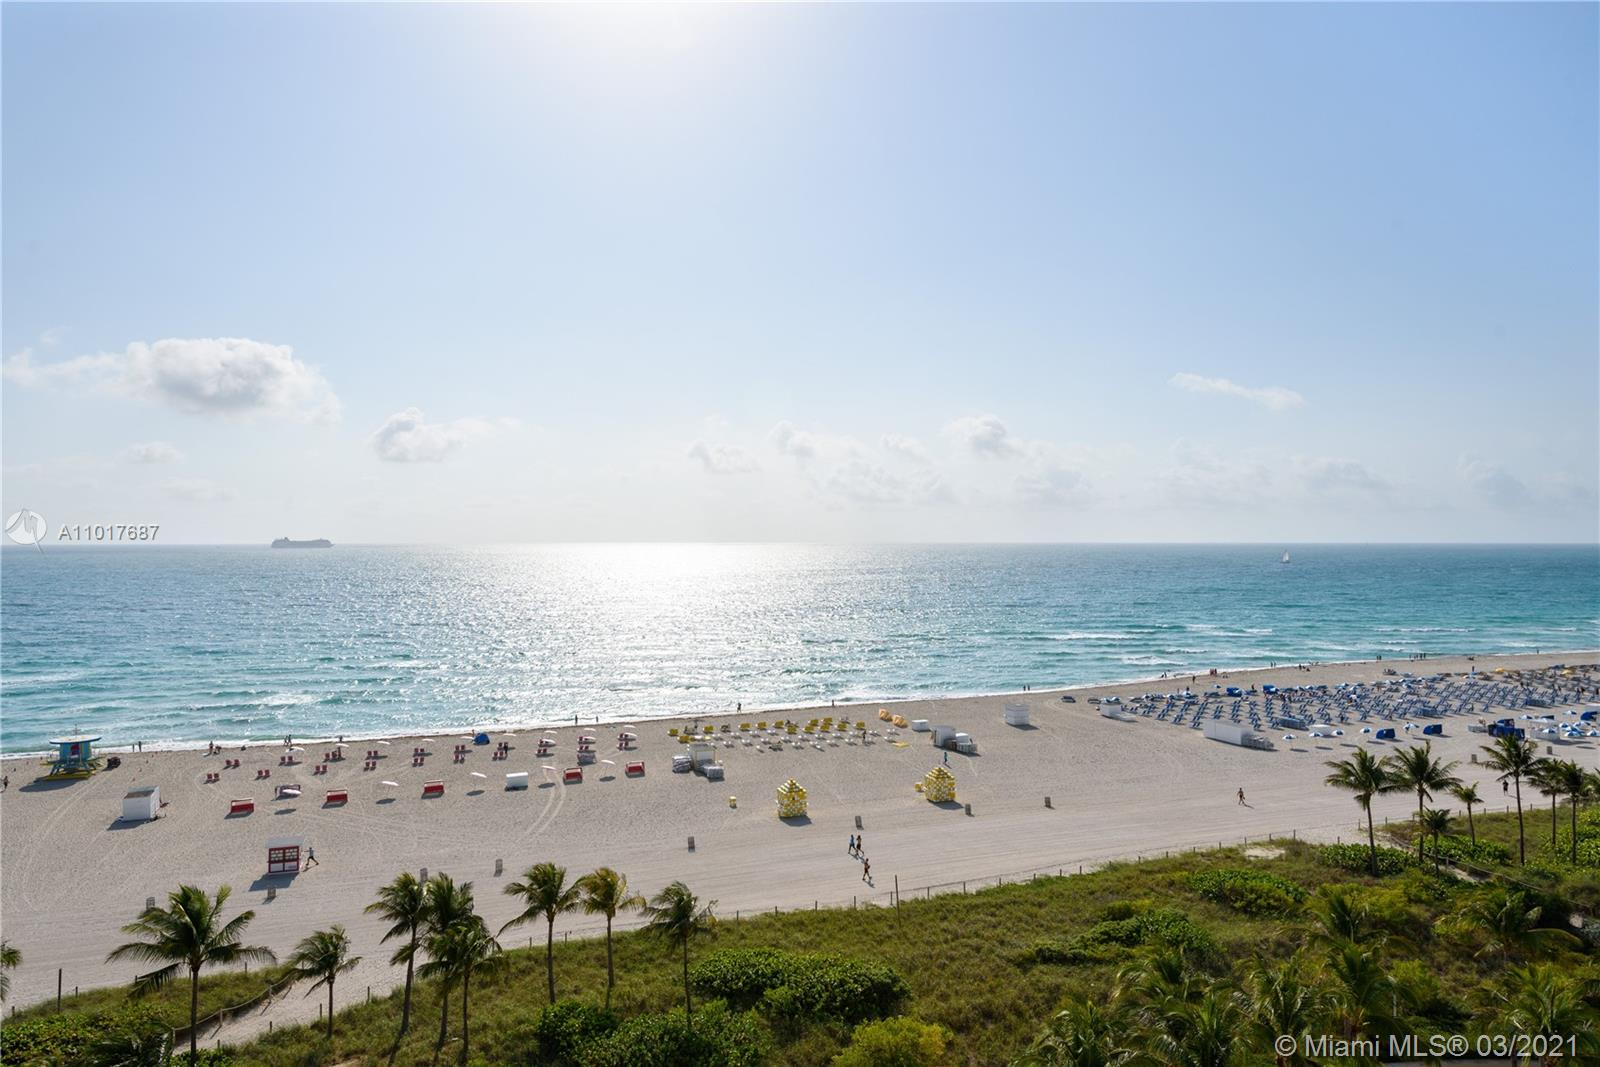 Perfect Pied-A-Terre with direct ocean views in the best location in South Beach. This spacious 2 bed/2 bath unit has been fully renovated & has spectacular views of the Atlantic  Ocean. The building is located directly ocean-front on Lincoln Rd across from the Ritz Carlton & just steps from all that Miami Beach has to offer. This apartment has been  meticulously updated & features a sleek contemporary kitchen with natural stone countertops & stainless steel backsplash, spa-like modern bathrooms, and furnished with high-end  Italian furniture. Can be rented 12 times per year/30 day minimum. The unit features a 2nd entrance and the ability to close off the 2nd bedroom/bathroom as a studio with its own  kitchenette. You are able to rent it out separately or together as one unit